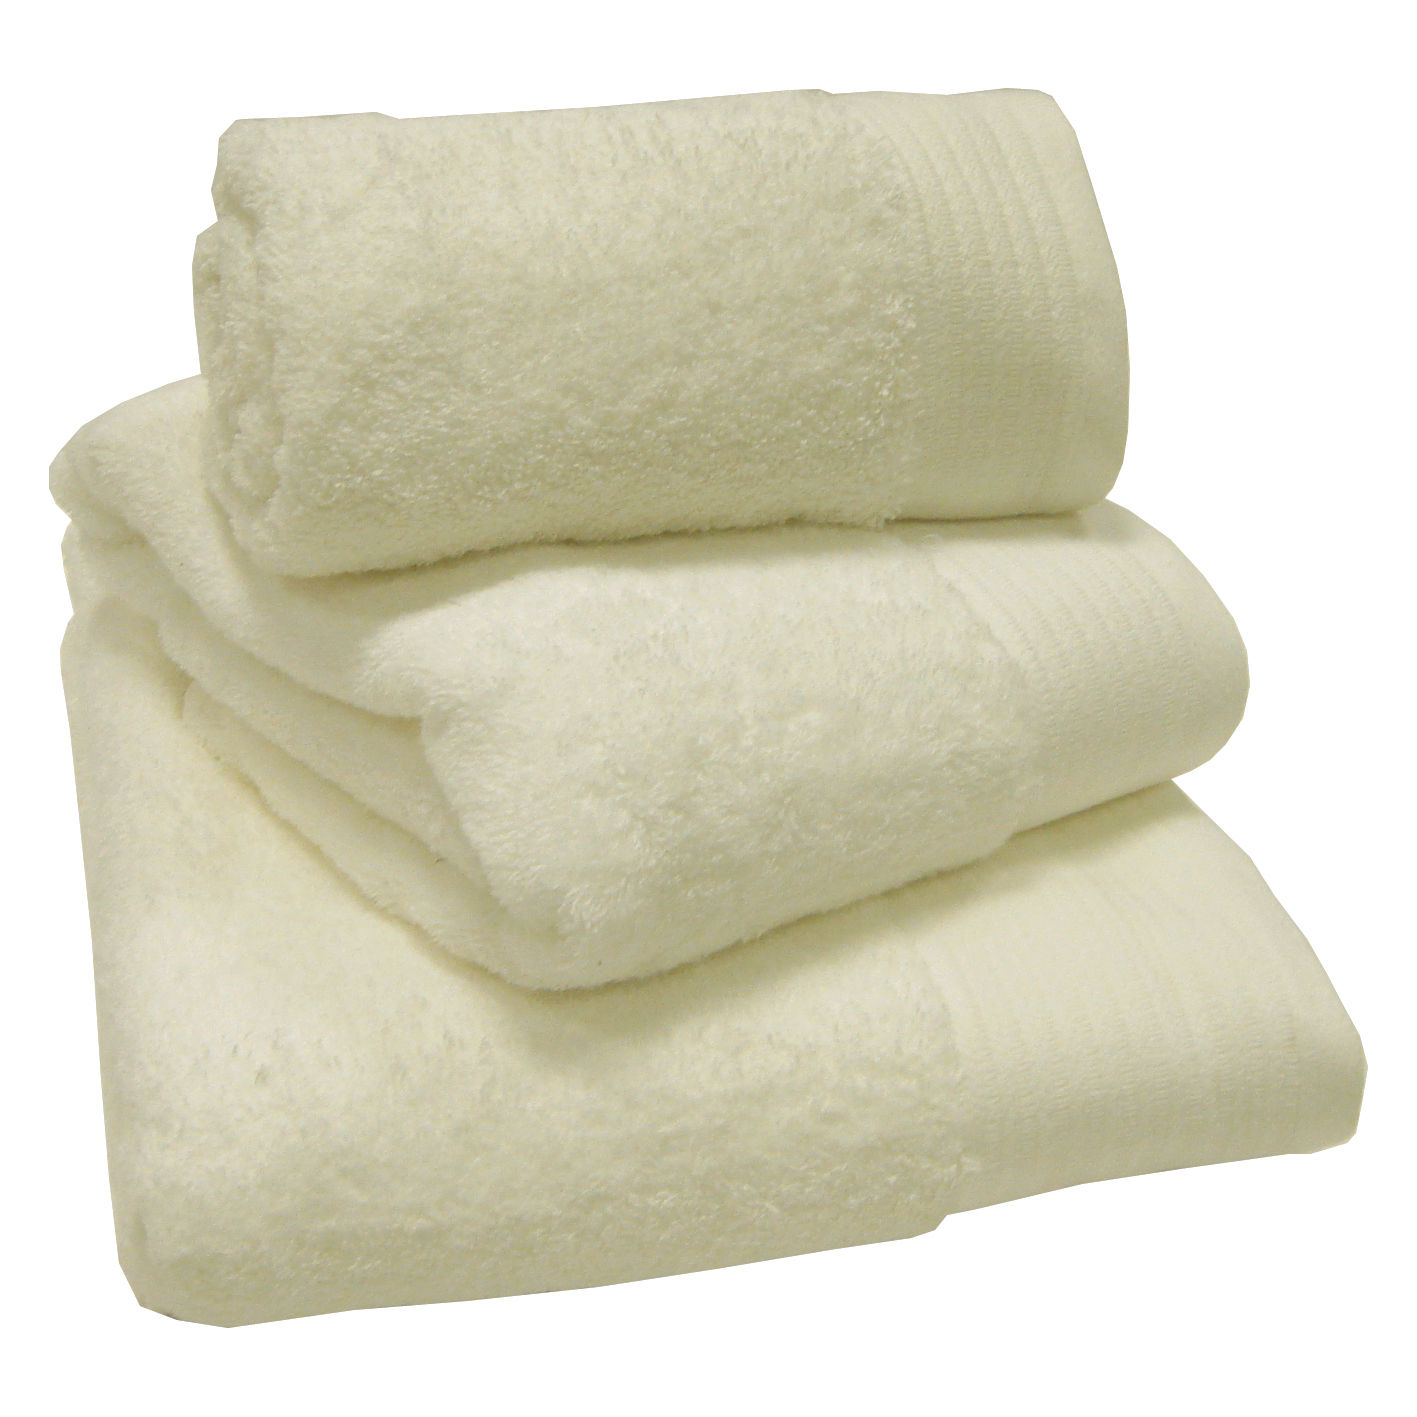 Sampedro Towel 500g